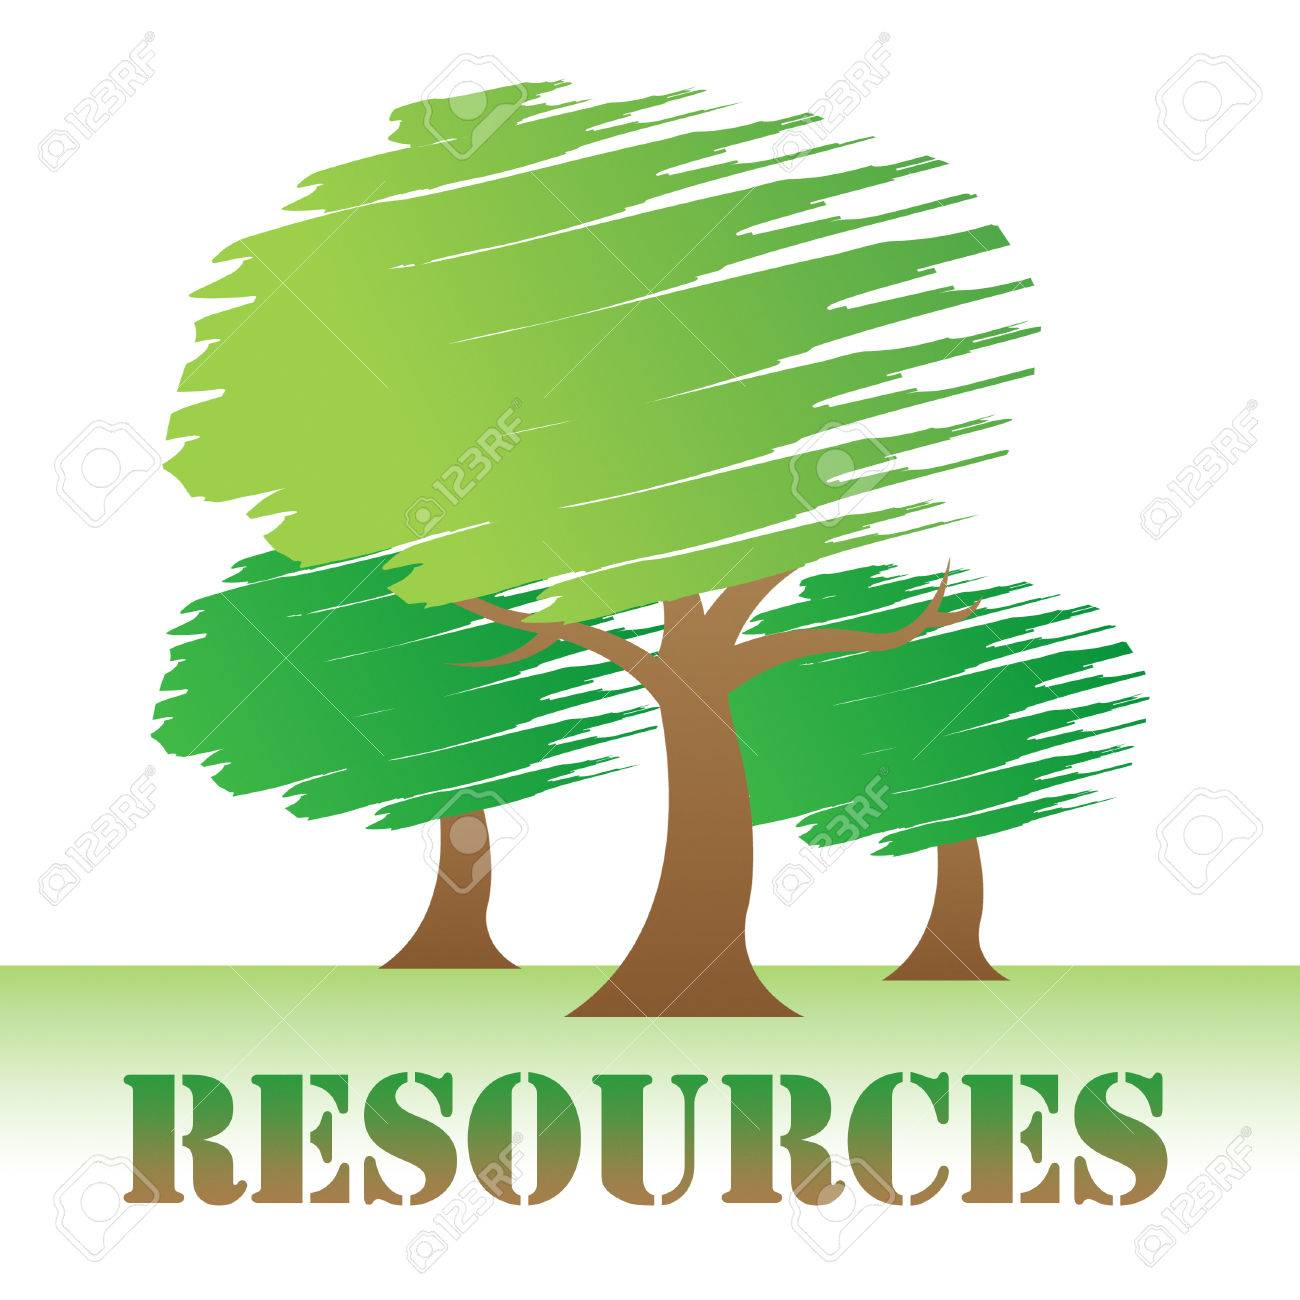 Resources Trees Meaning Natural Sources And Nature Stock Photo